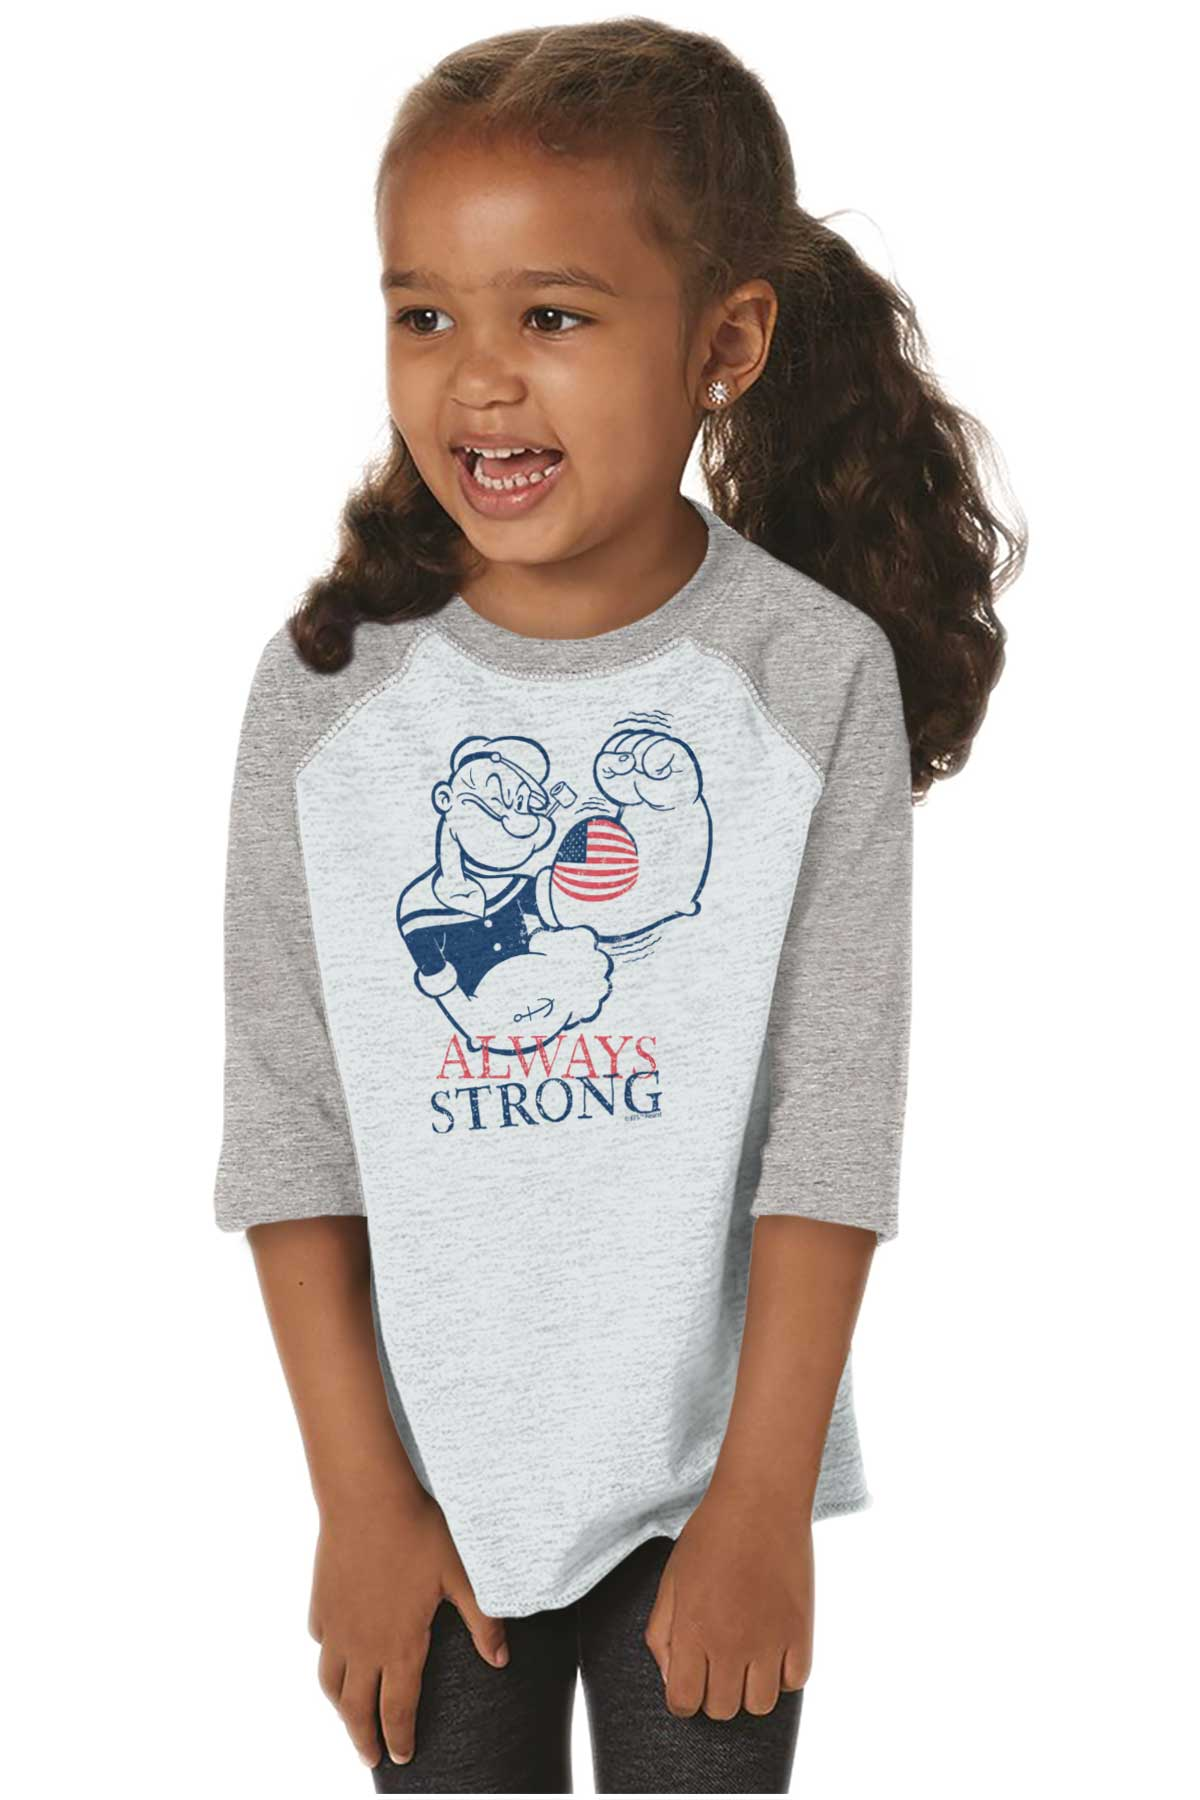 Always Strong Patriotic Popeye Sailor Funny Youth T-Shirt Tees Tshirt For Kids